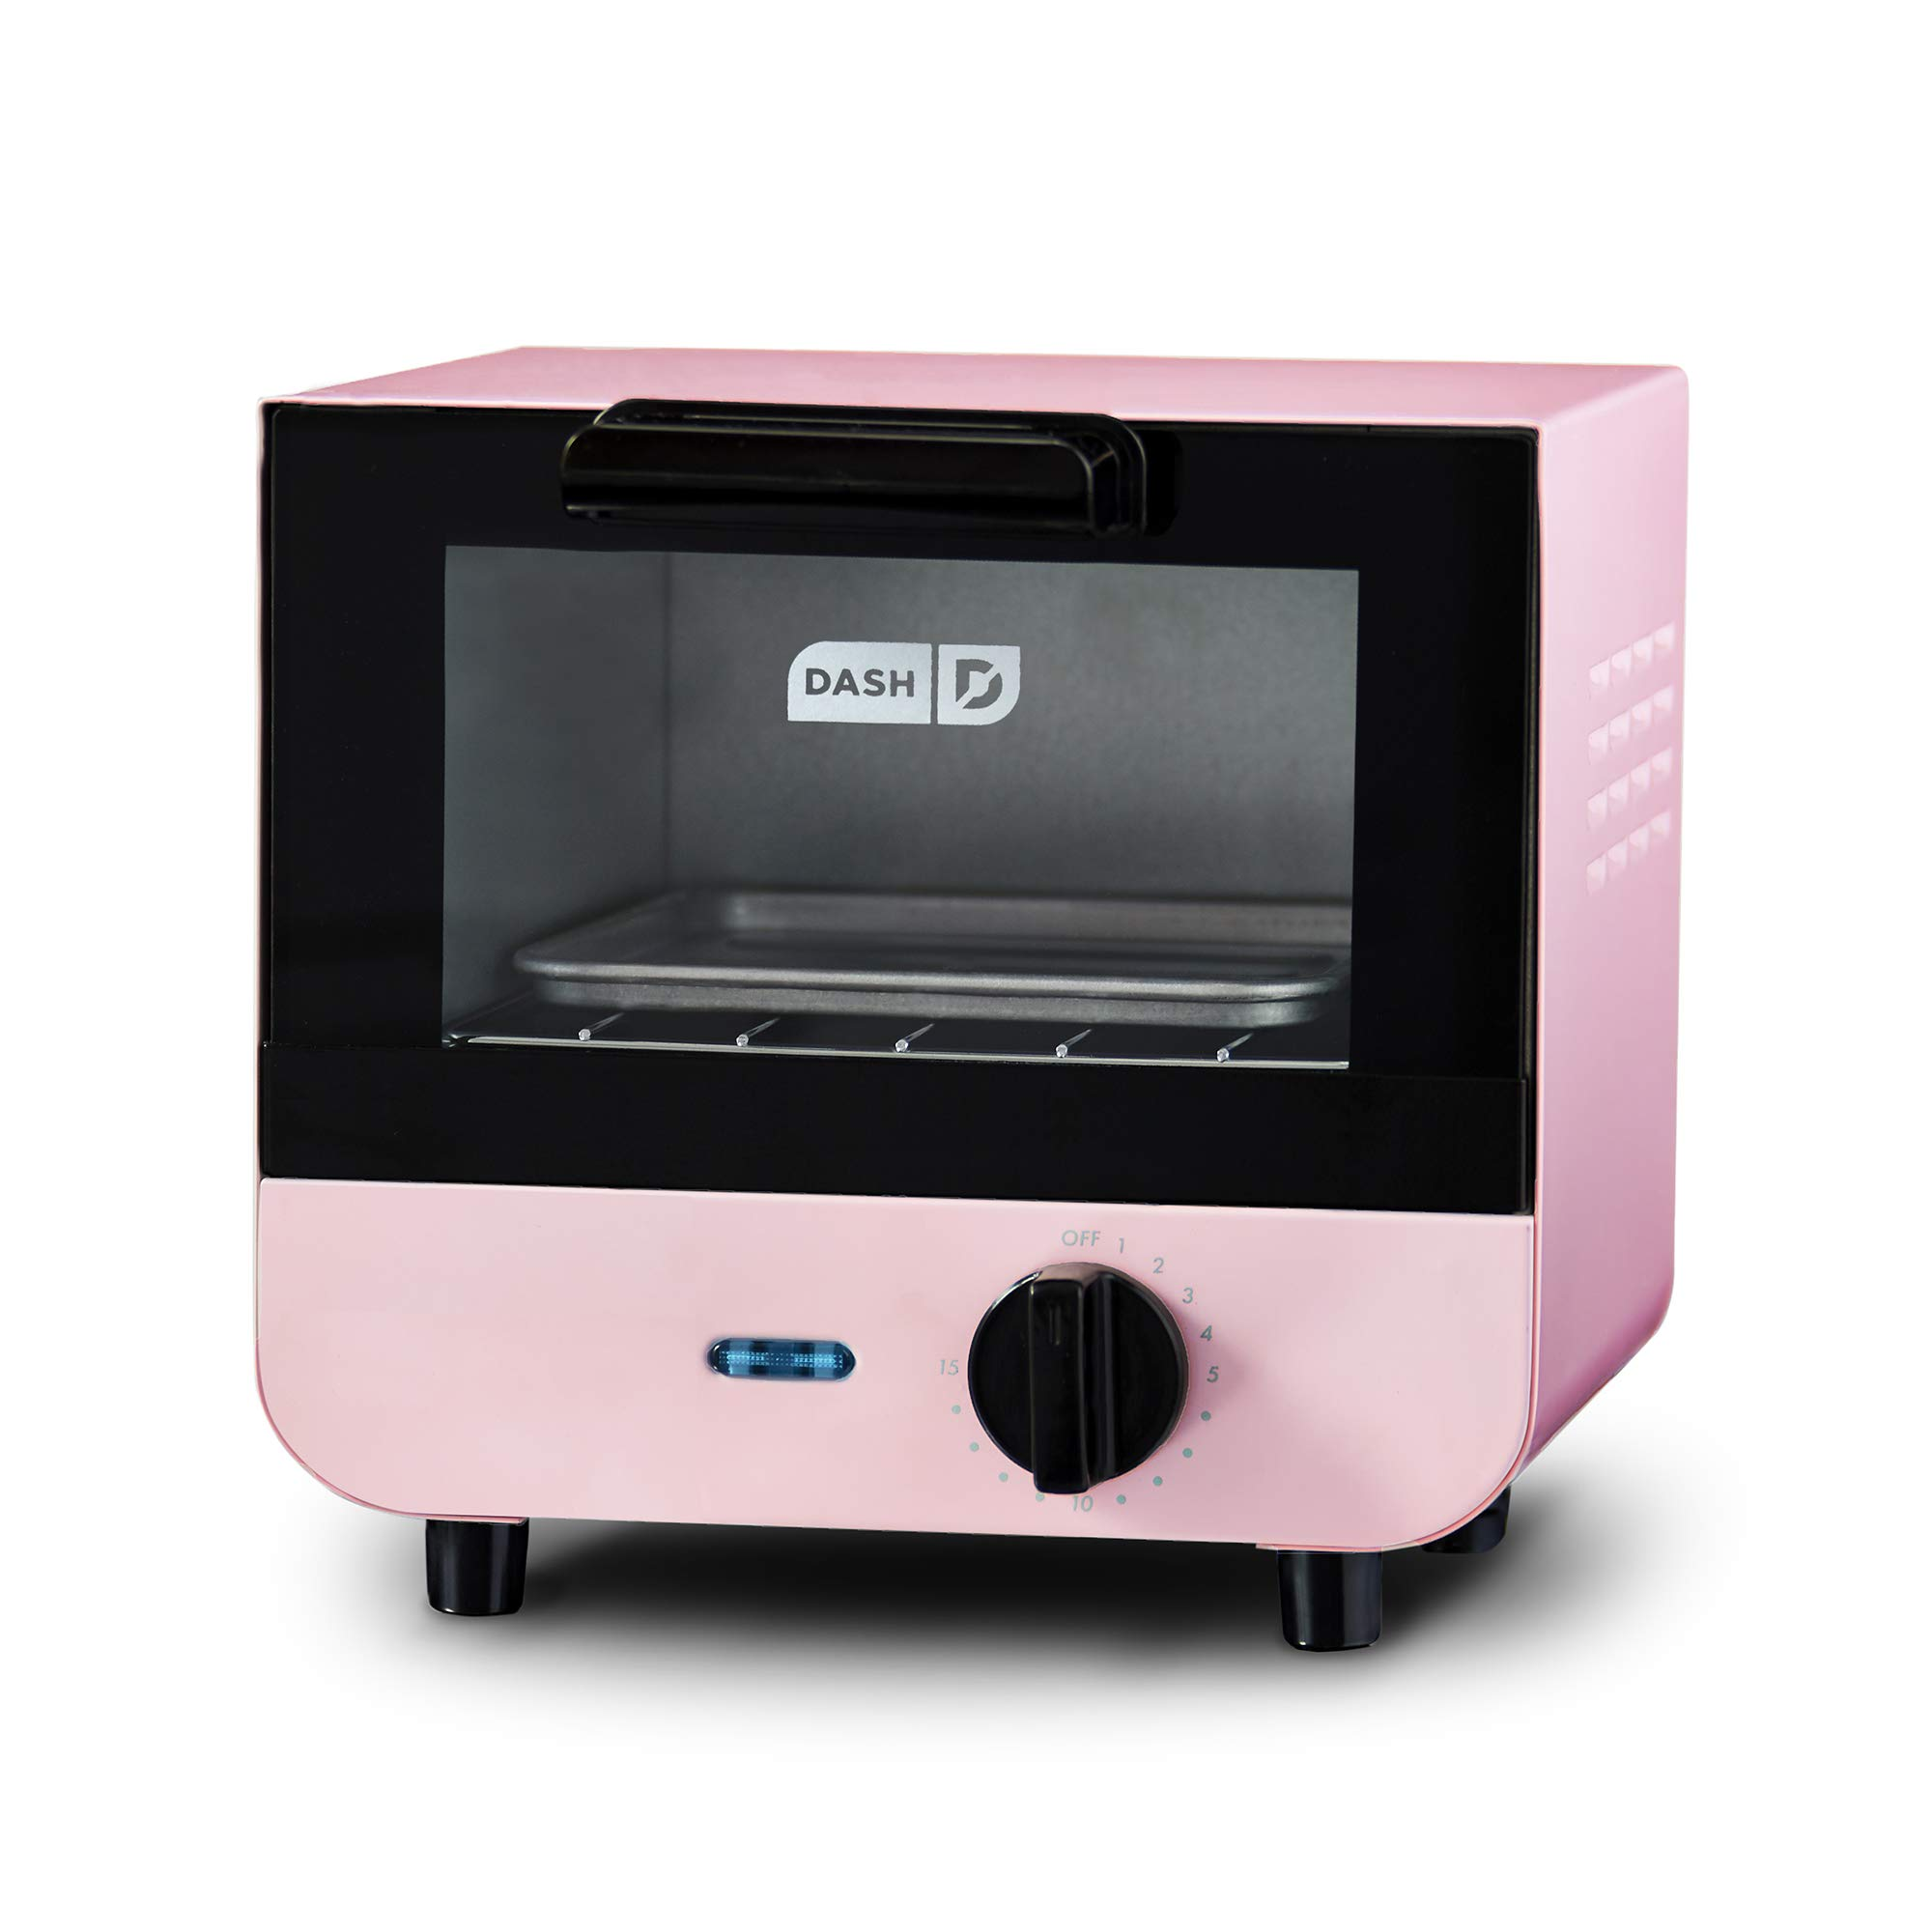 Dash DMTO100GBPK04 Mini Toaster Oven Cooker for for Bread, Bagels, Cookies, Pizza, Paninis & More with Baking Tray, Rack, Auto Shut Off Feature, Pink by DASH